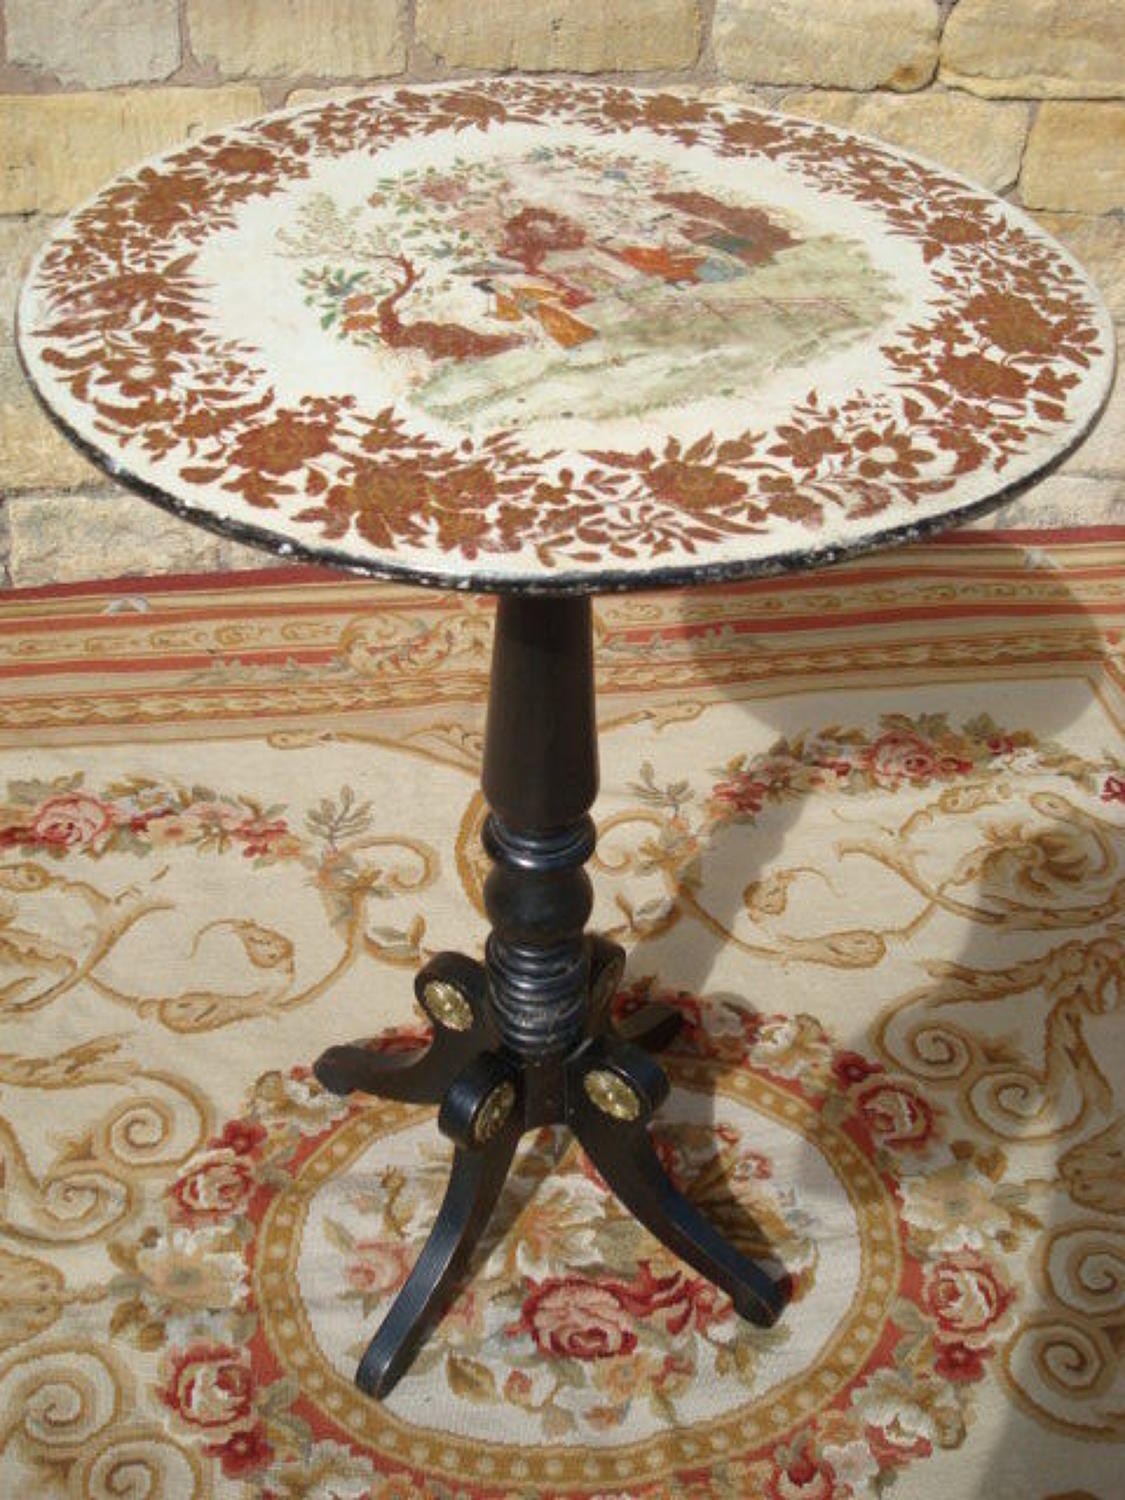 Regency round occasional table